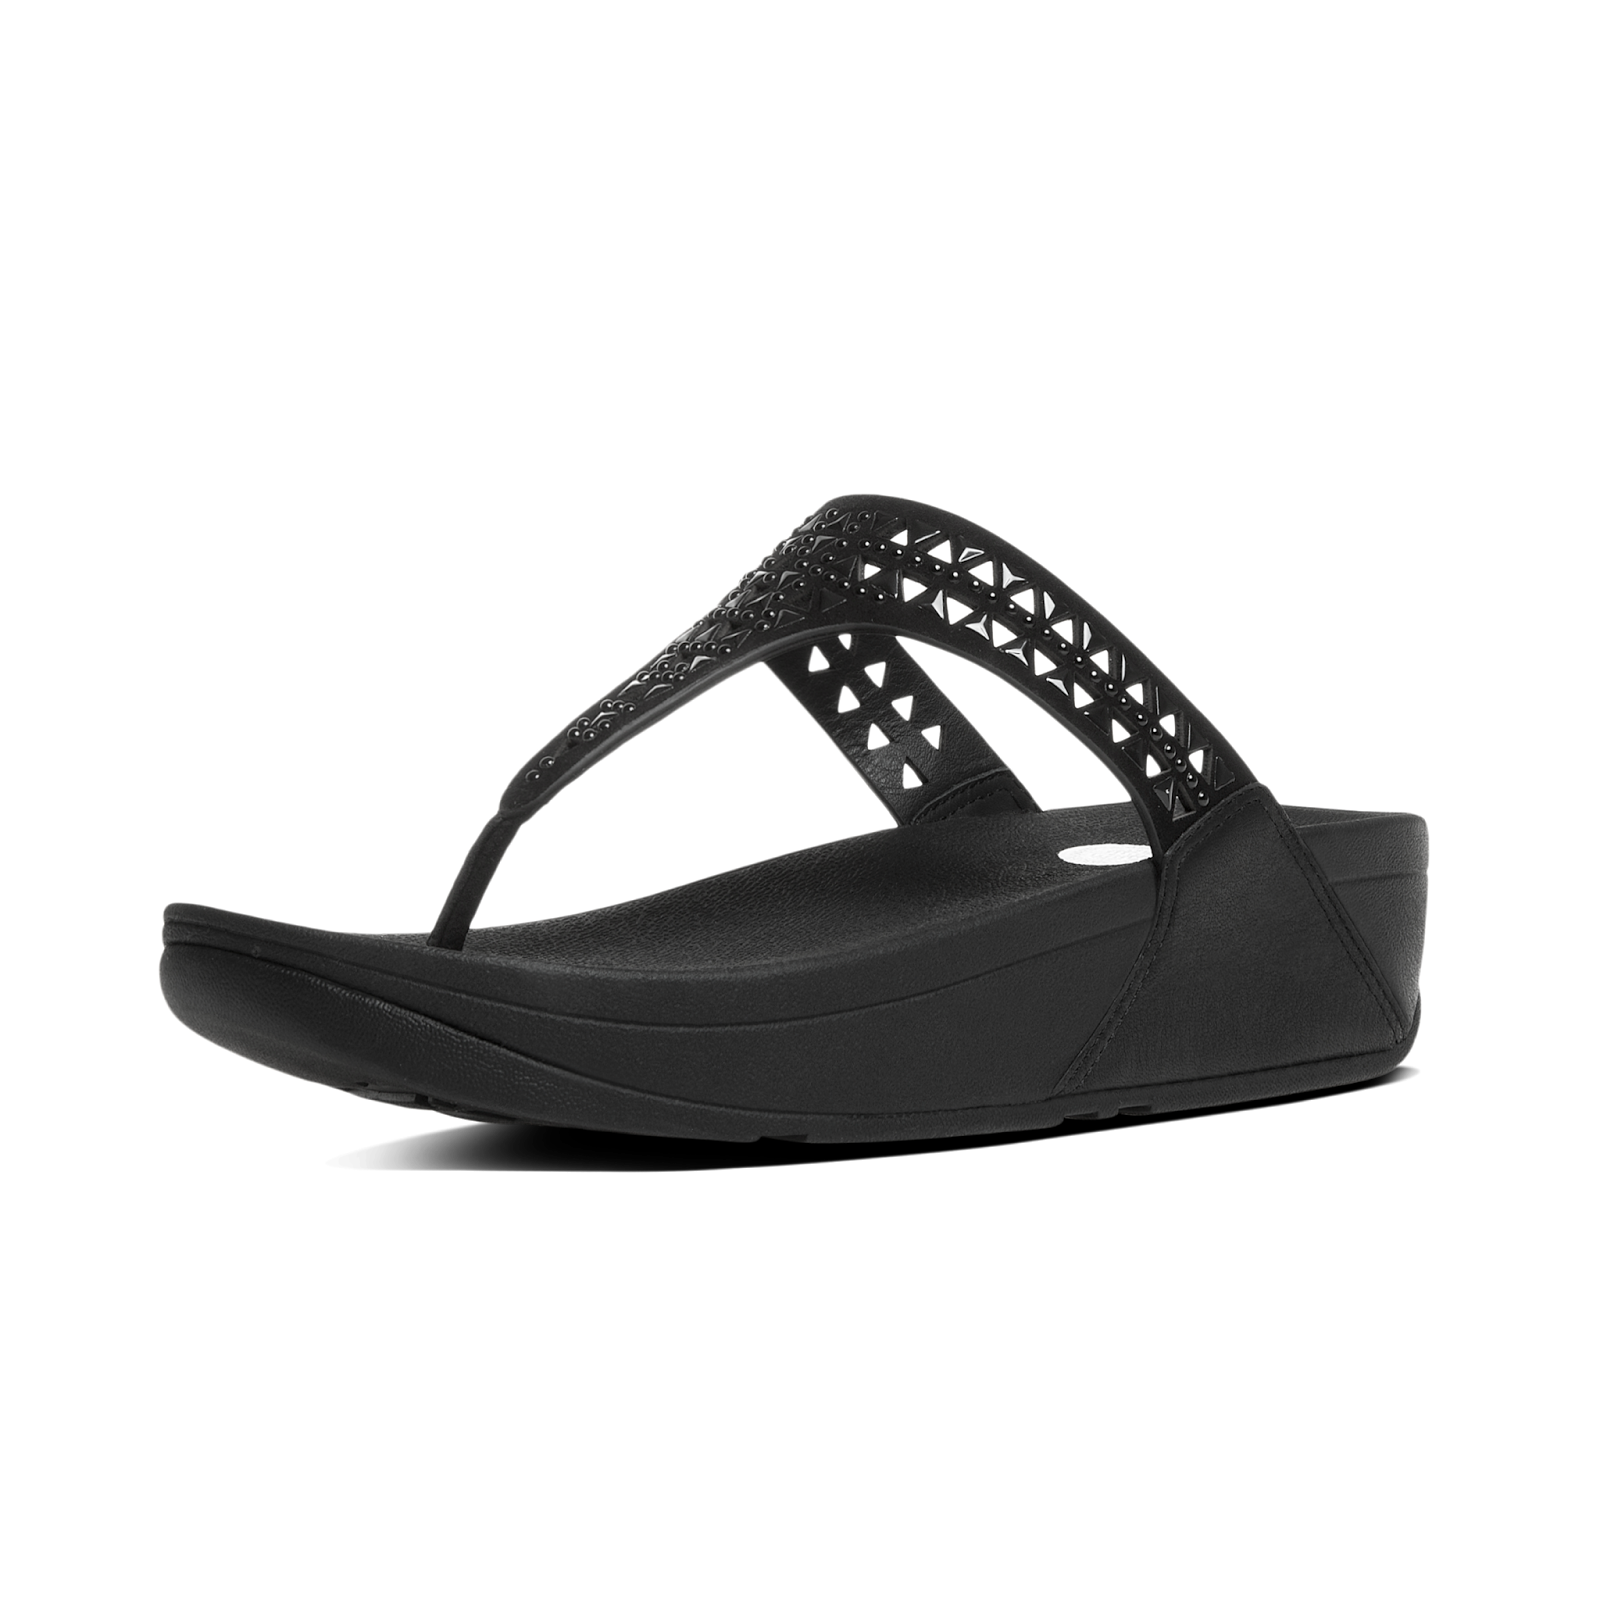 a6dd71424bcb FitFlop Launches New Cruise Collection